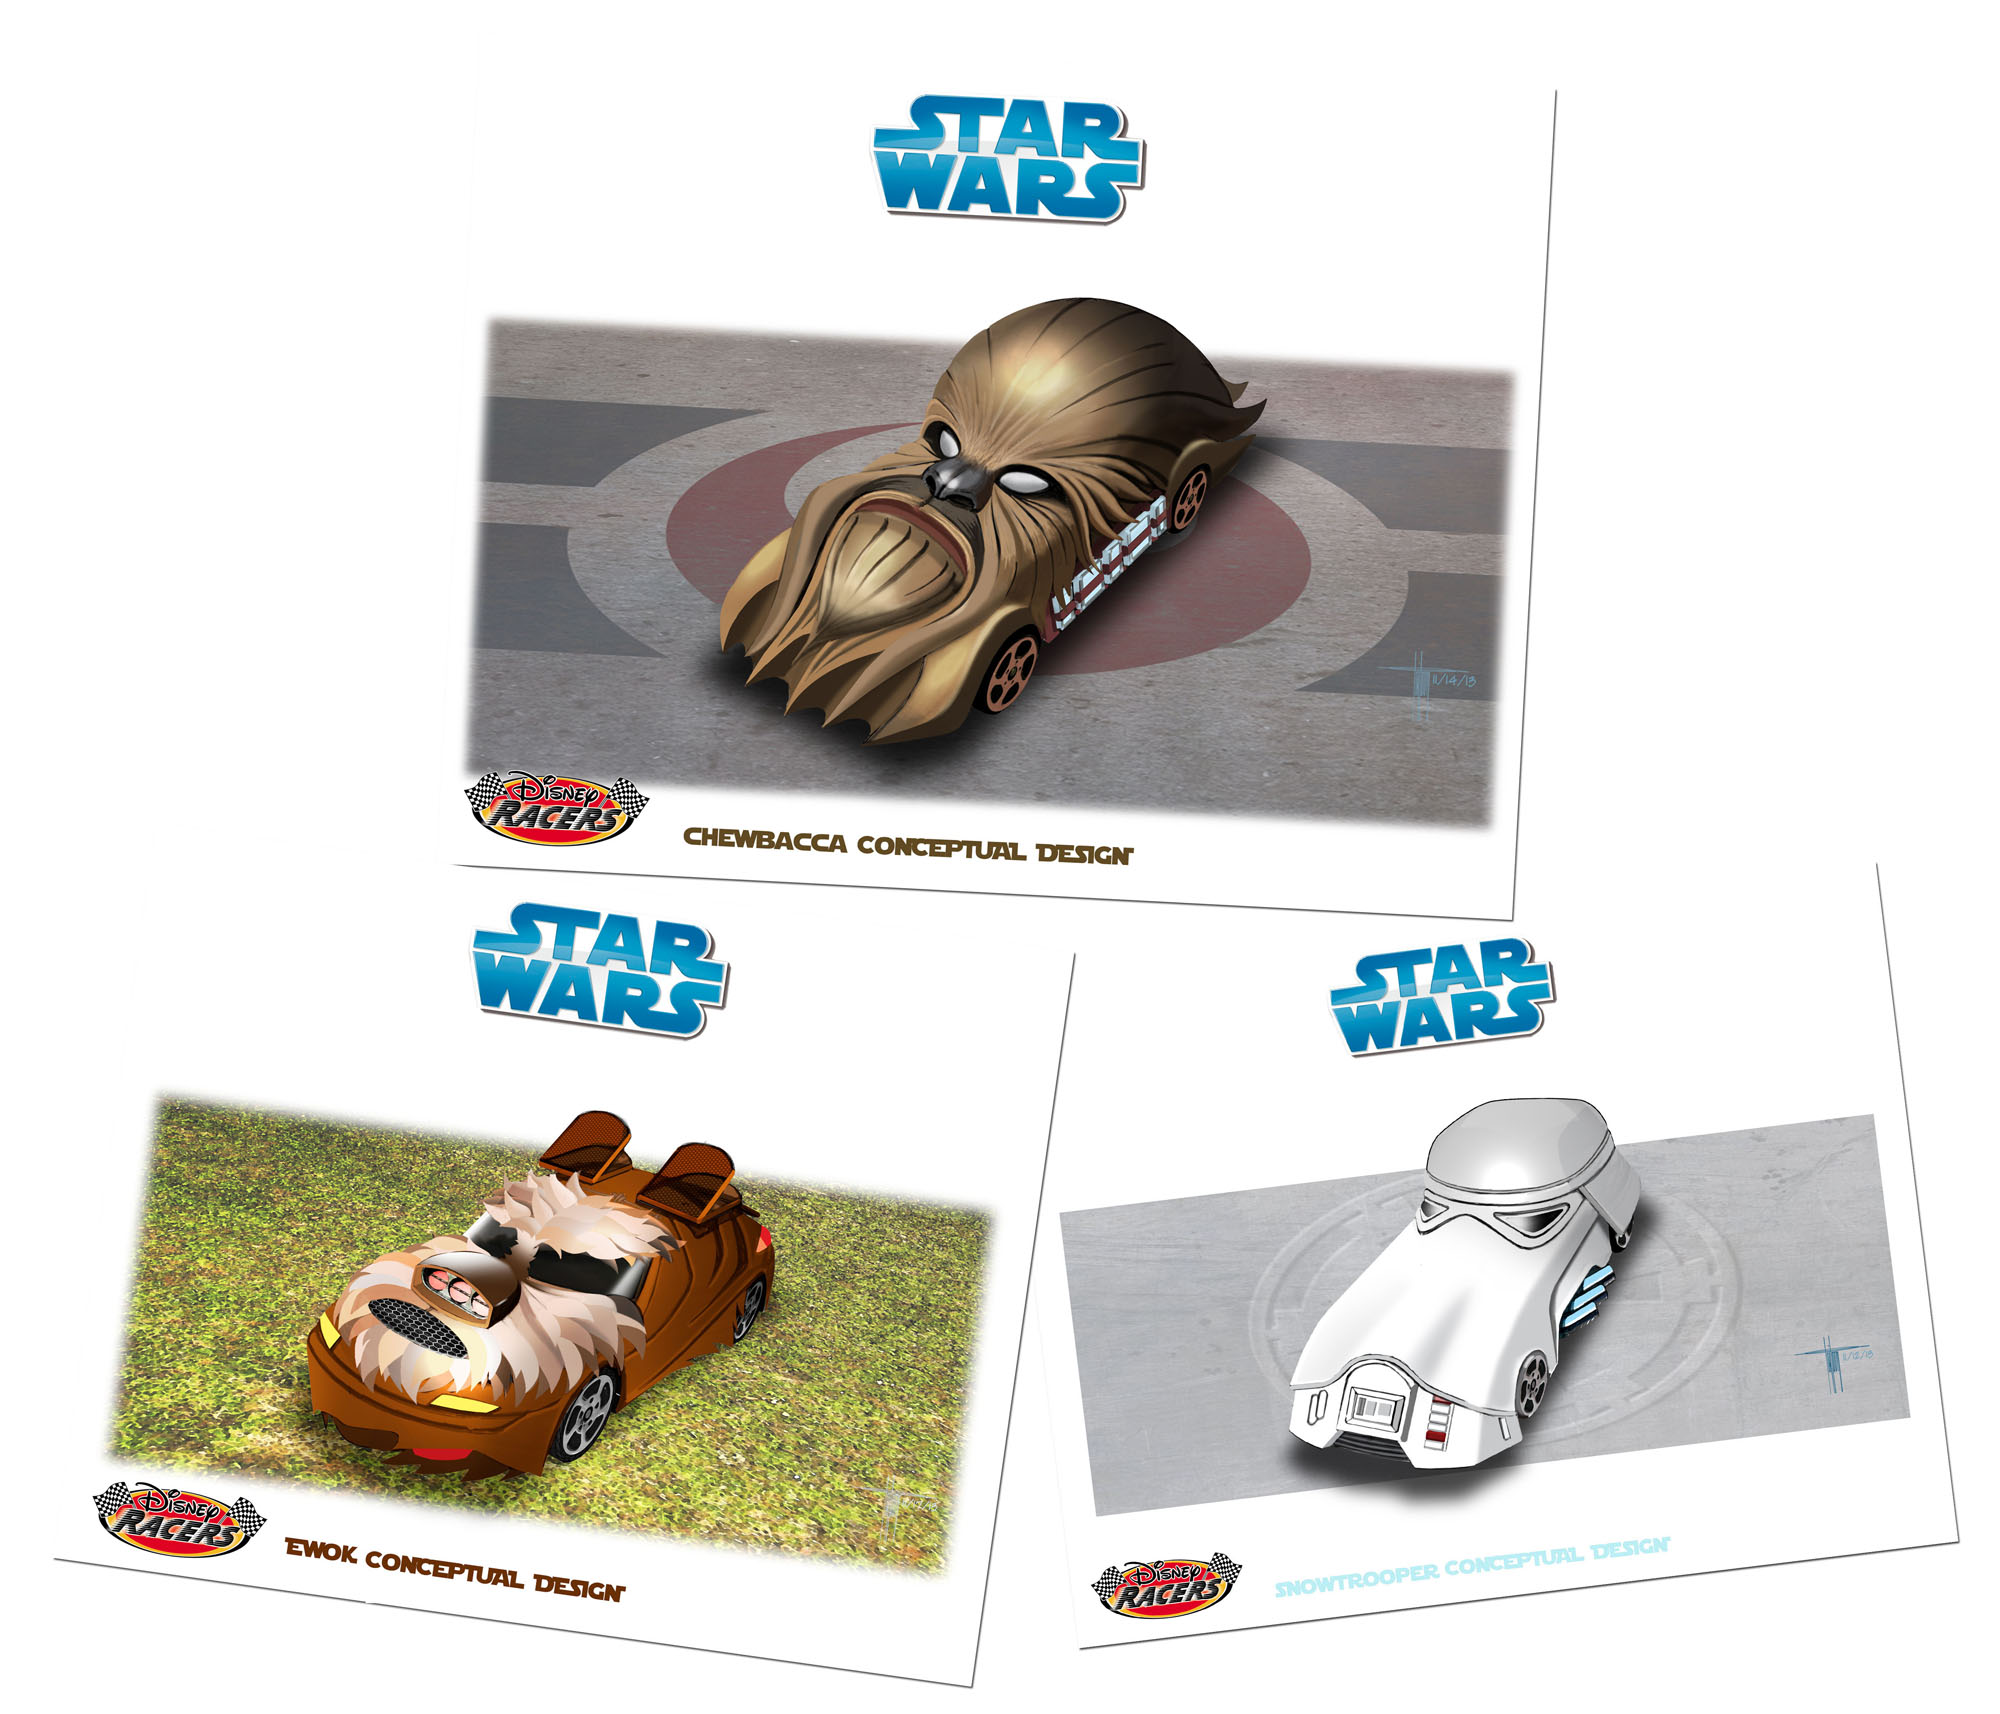 New Merchandise Coming to Fifth Weekend at Star Wars Weekends From June 13-15, 2014 at Disney's Hollywood Studios